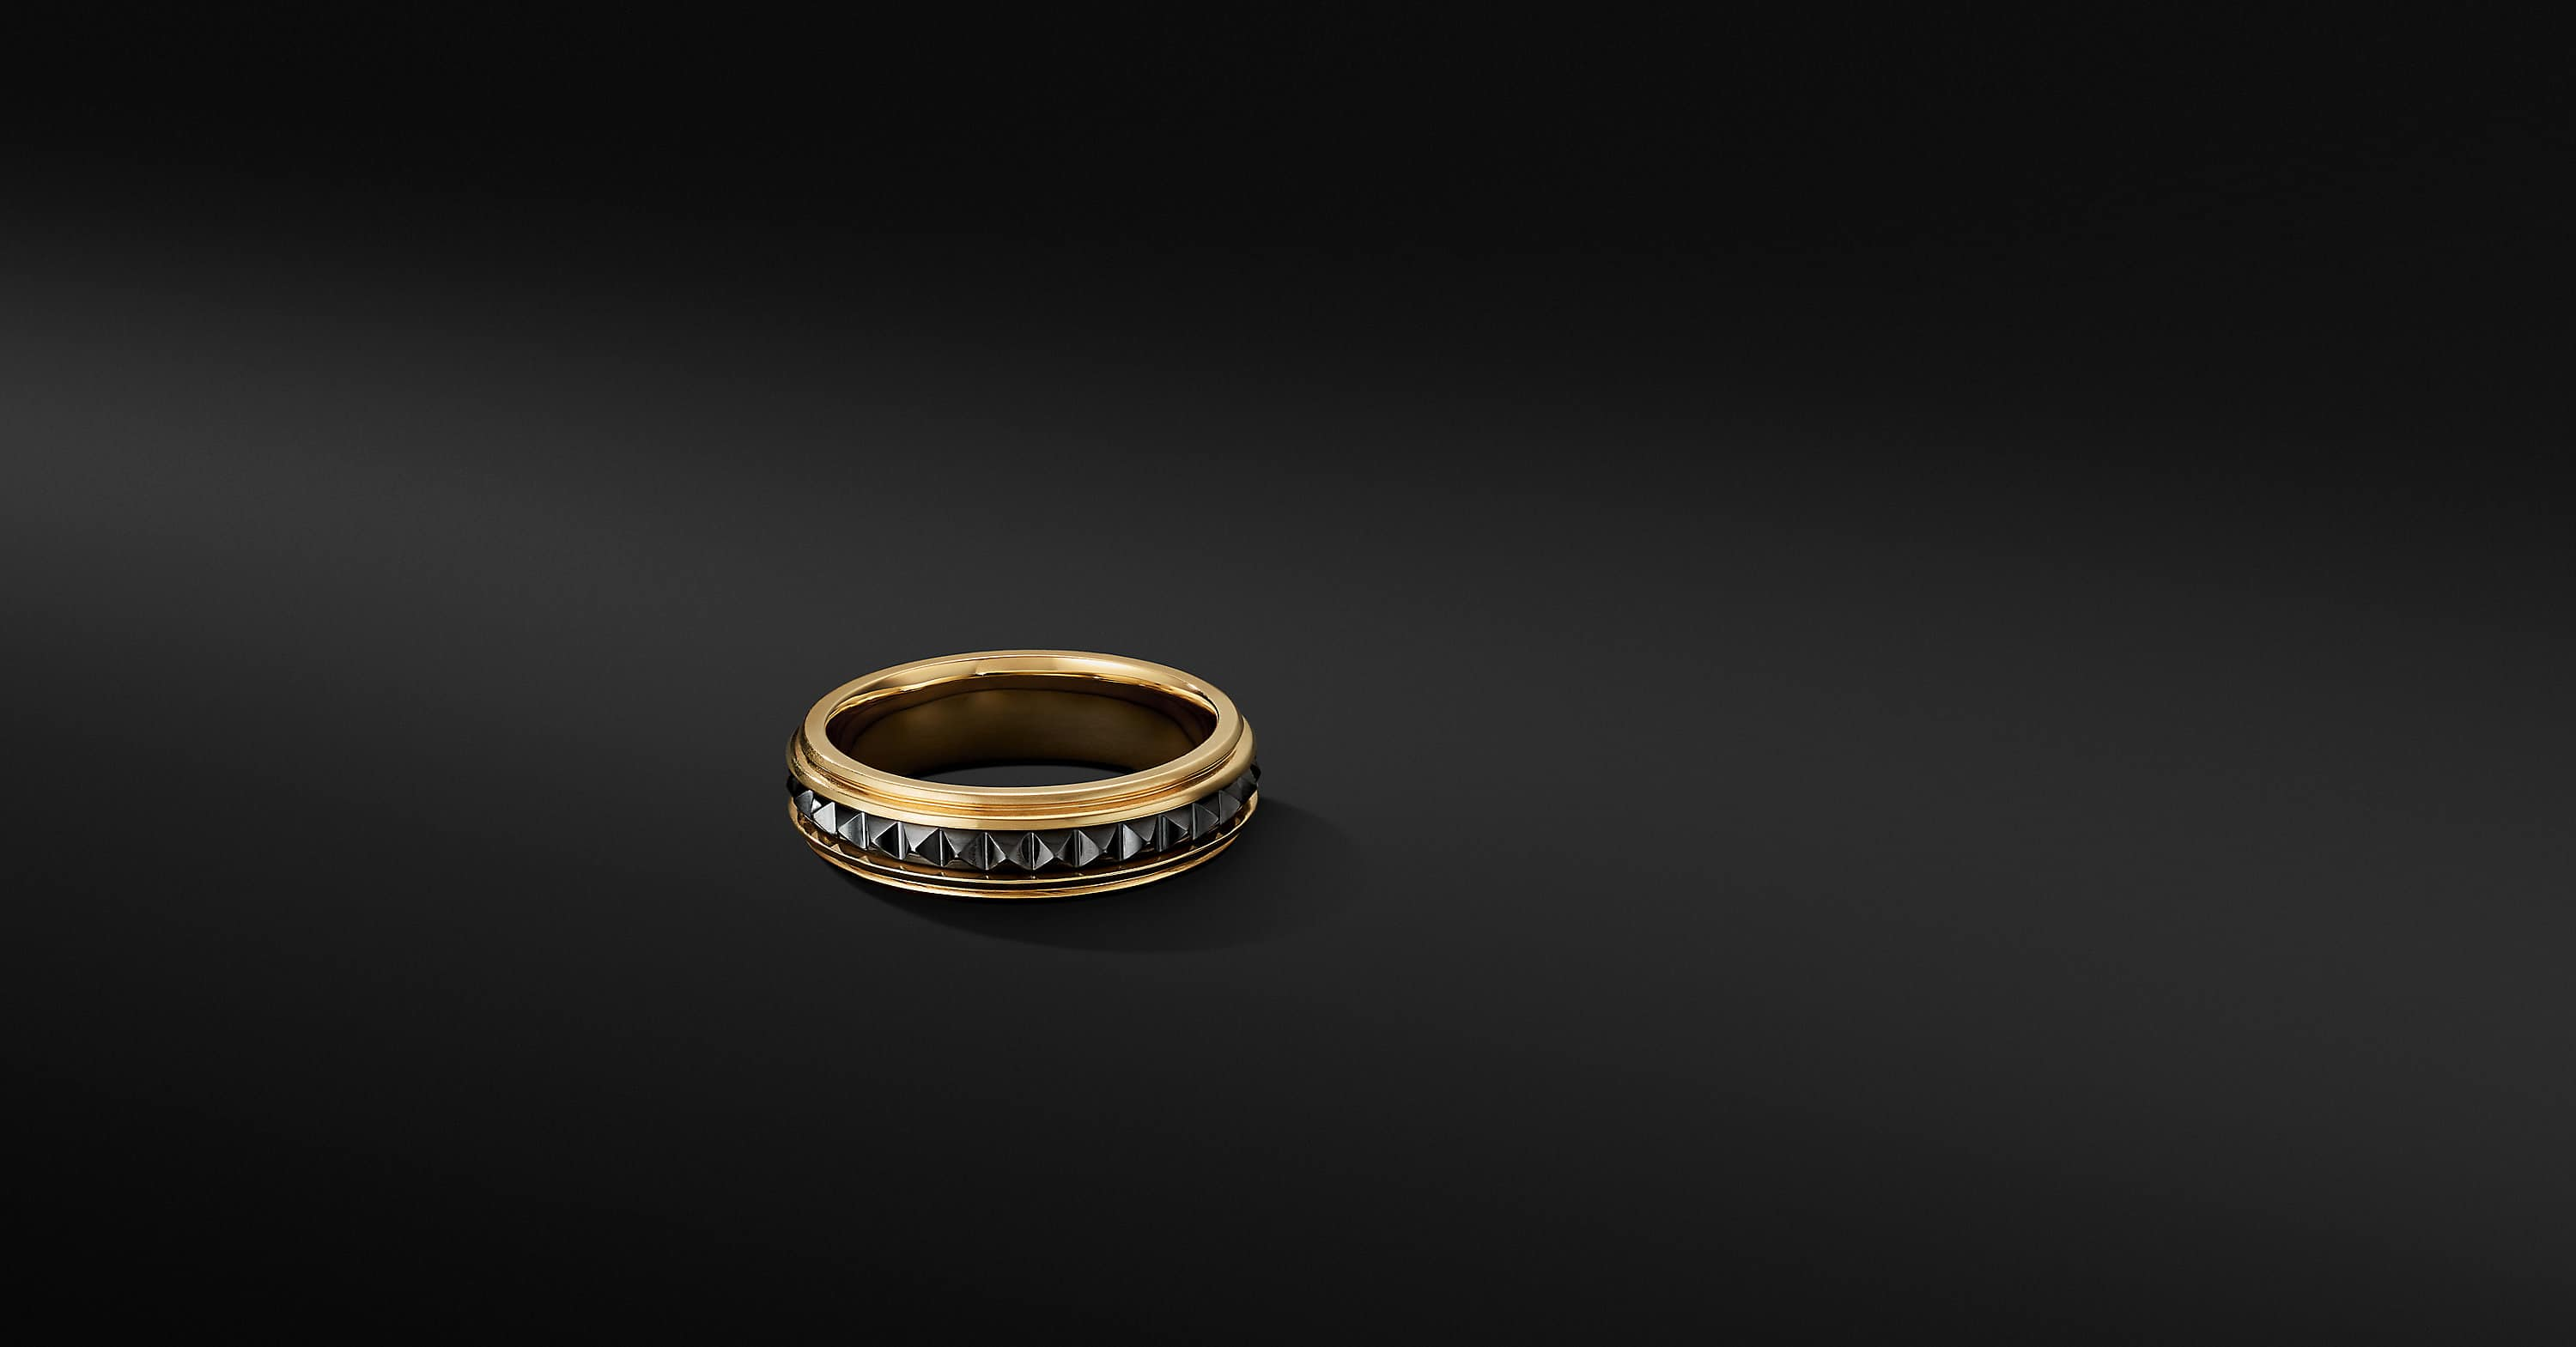 Pyramid Band Ring in 18K Yellow Gold with Black Titanium, 6mm